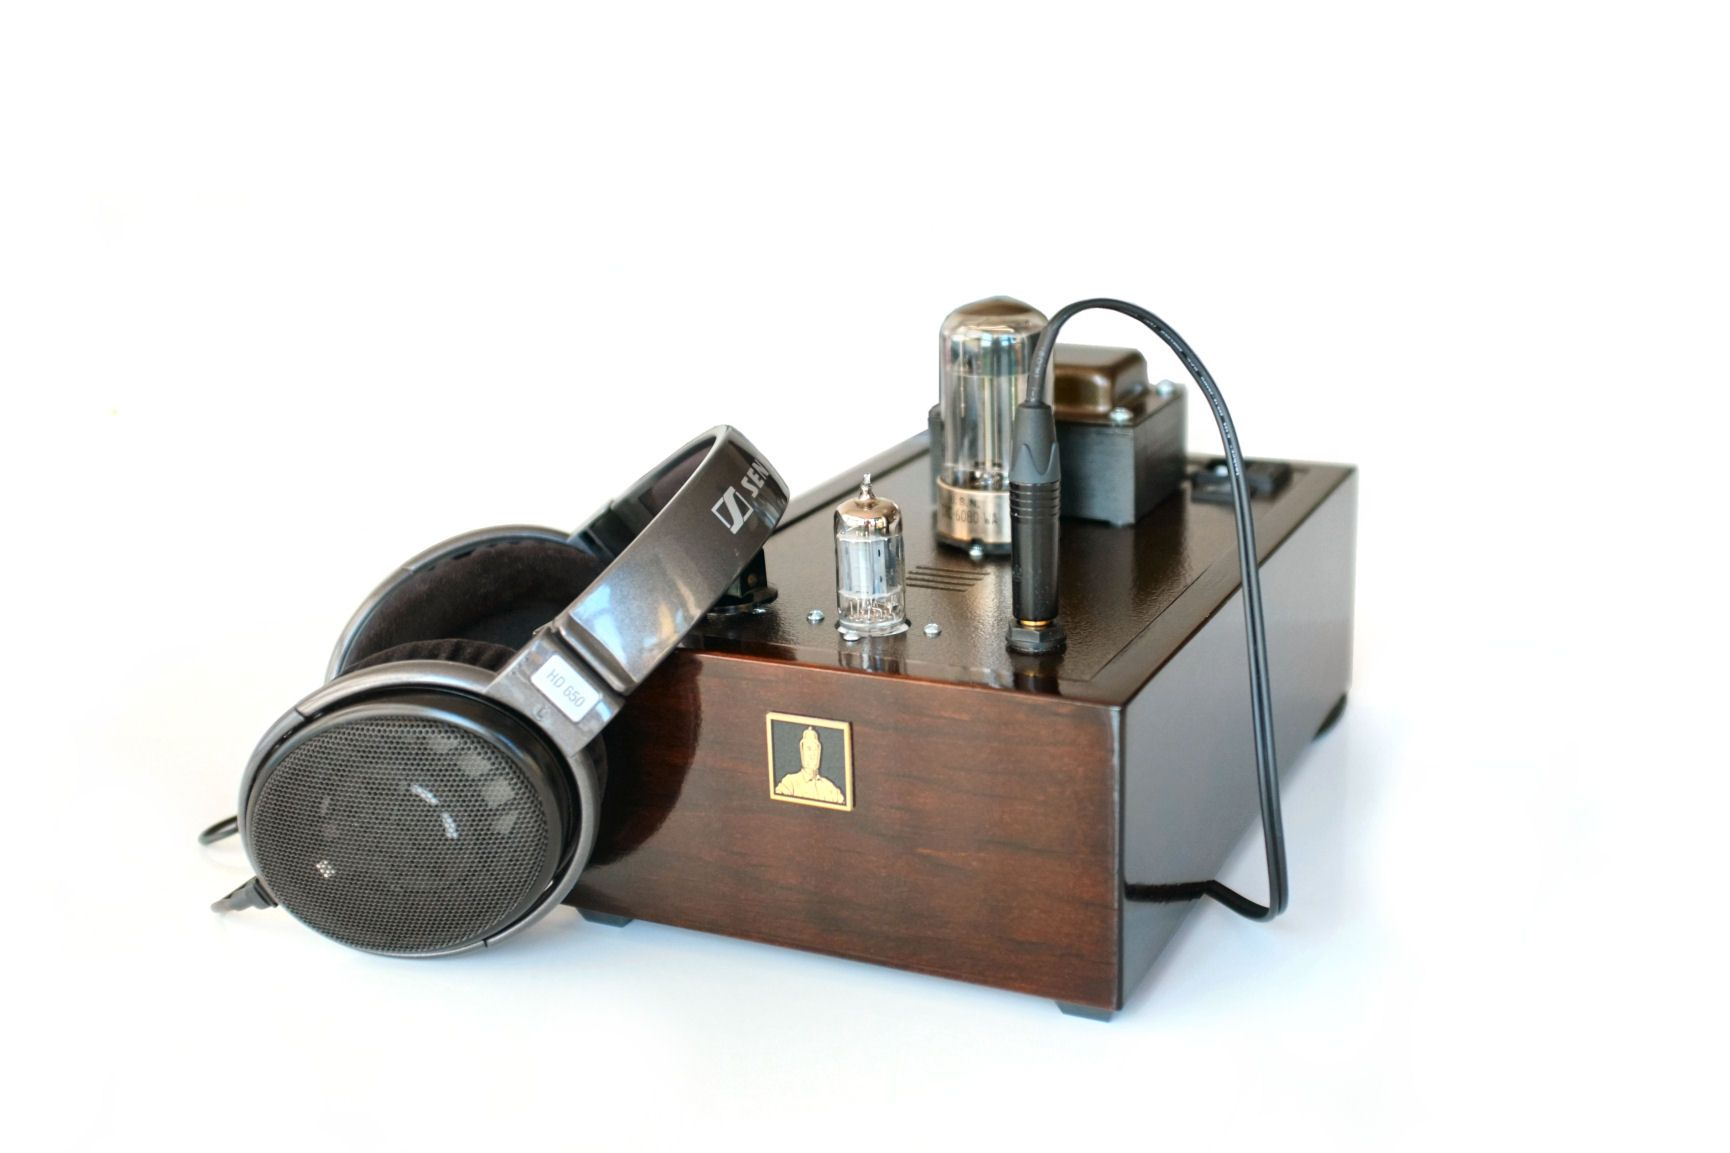 A popular Bottlehead Crack mod is changing the electrolytic